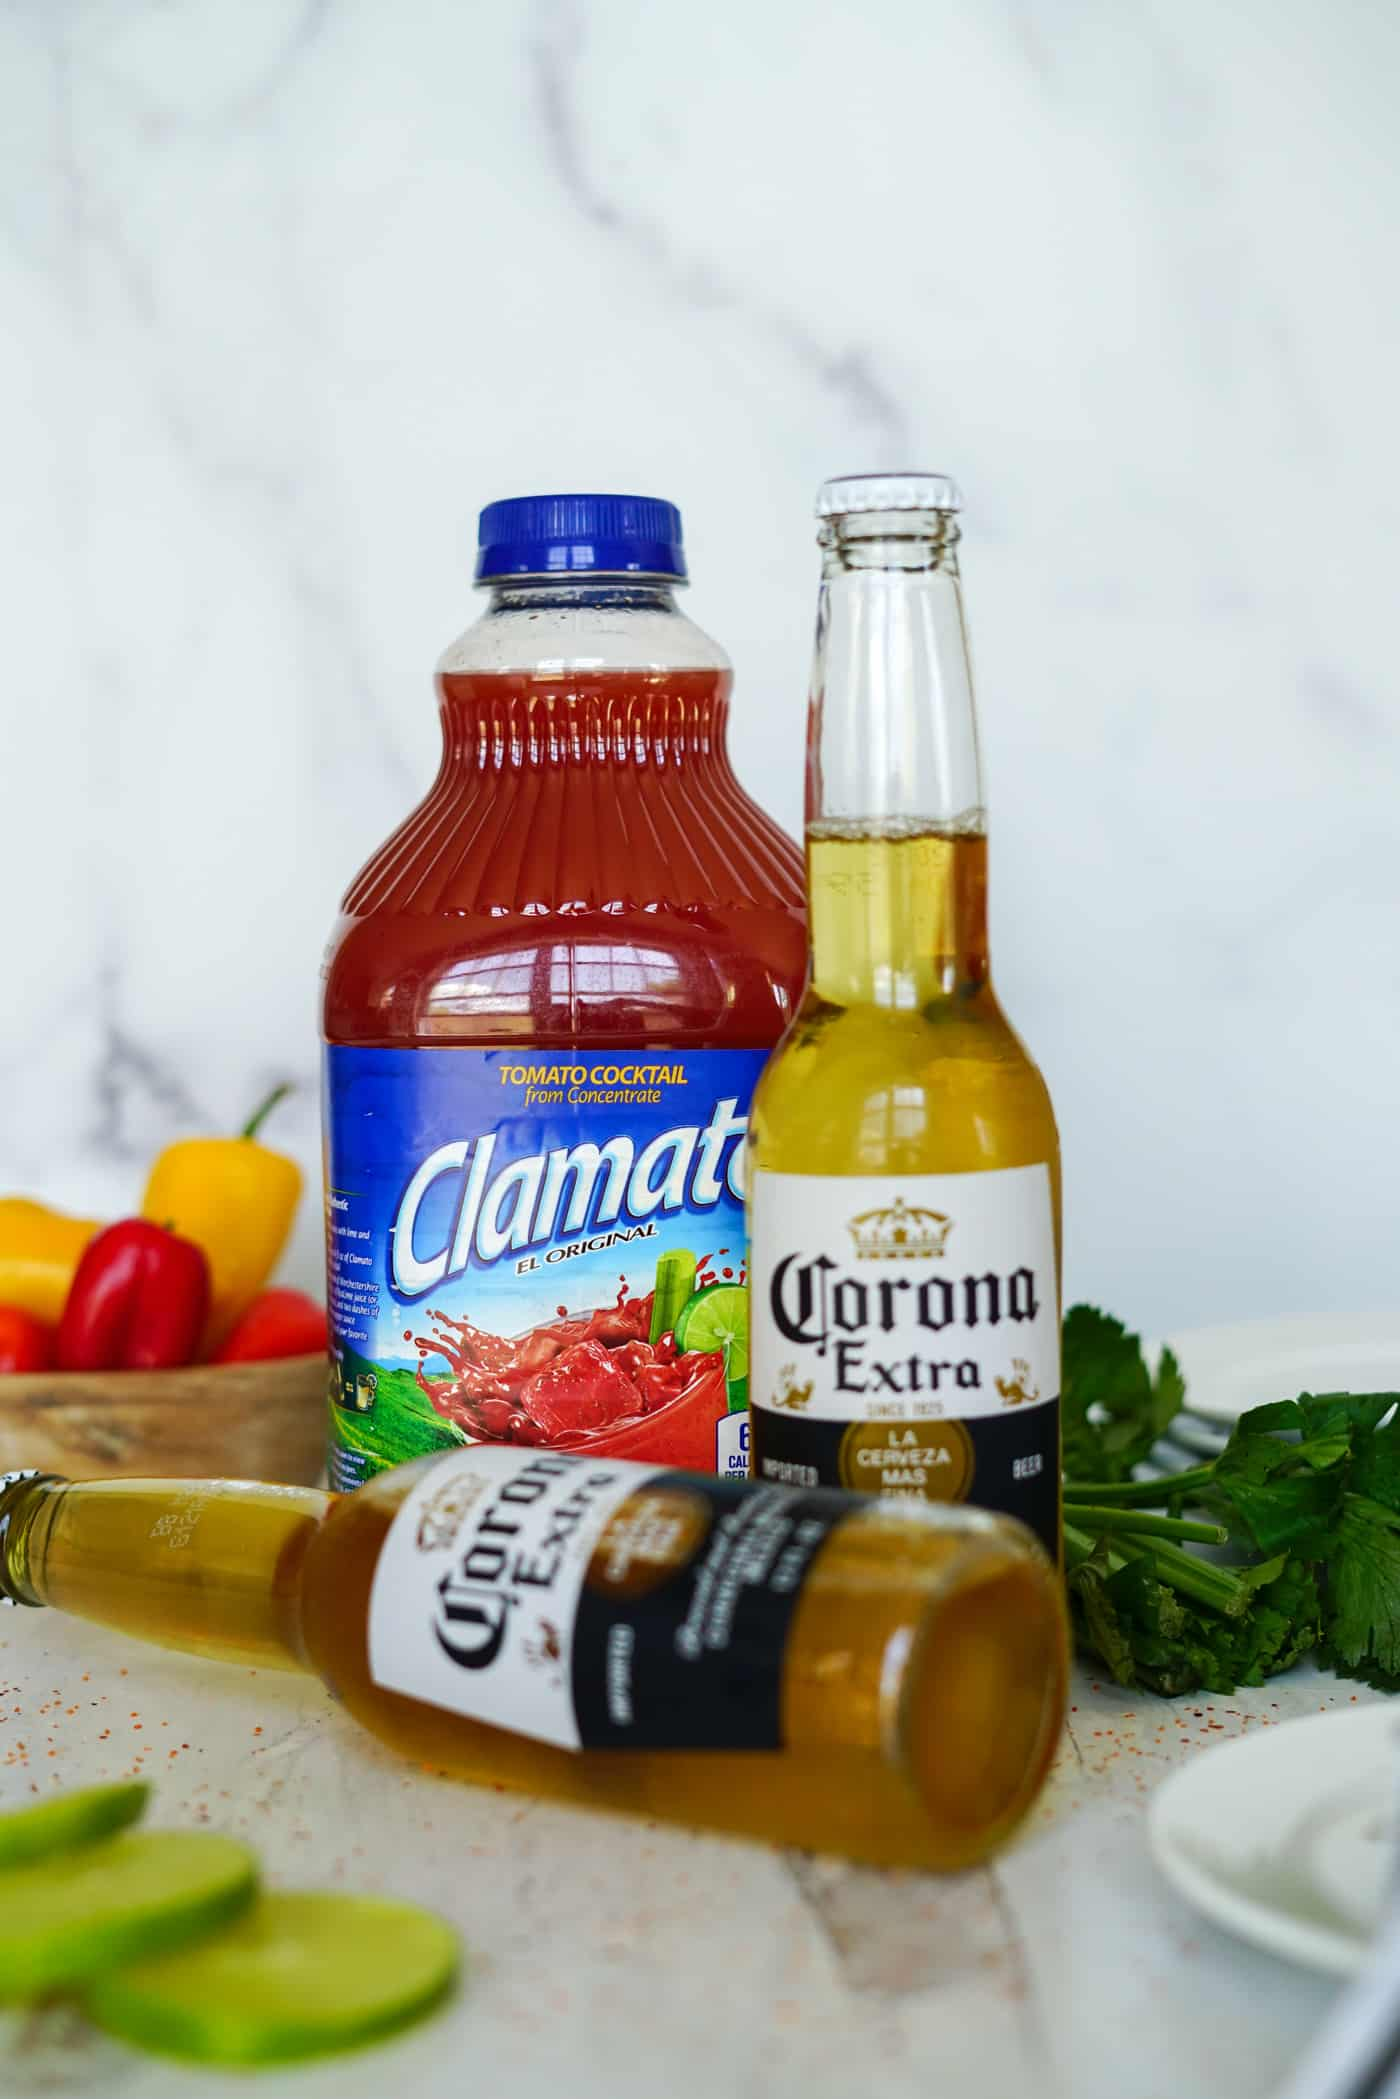 A large bottle of Clamato and two bottles of Corona beer for a Michelada recipe.